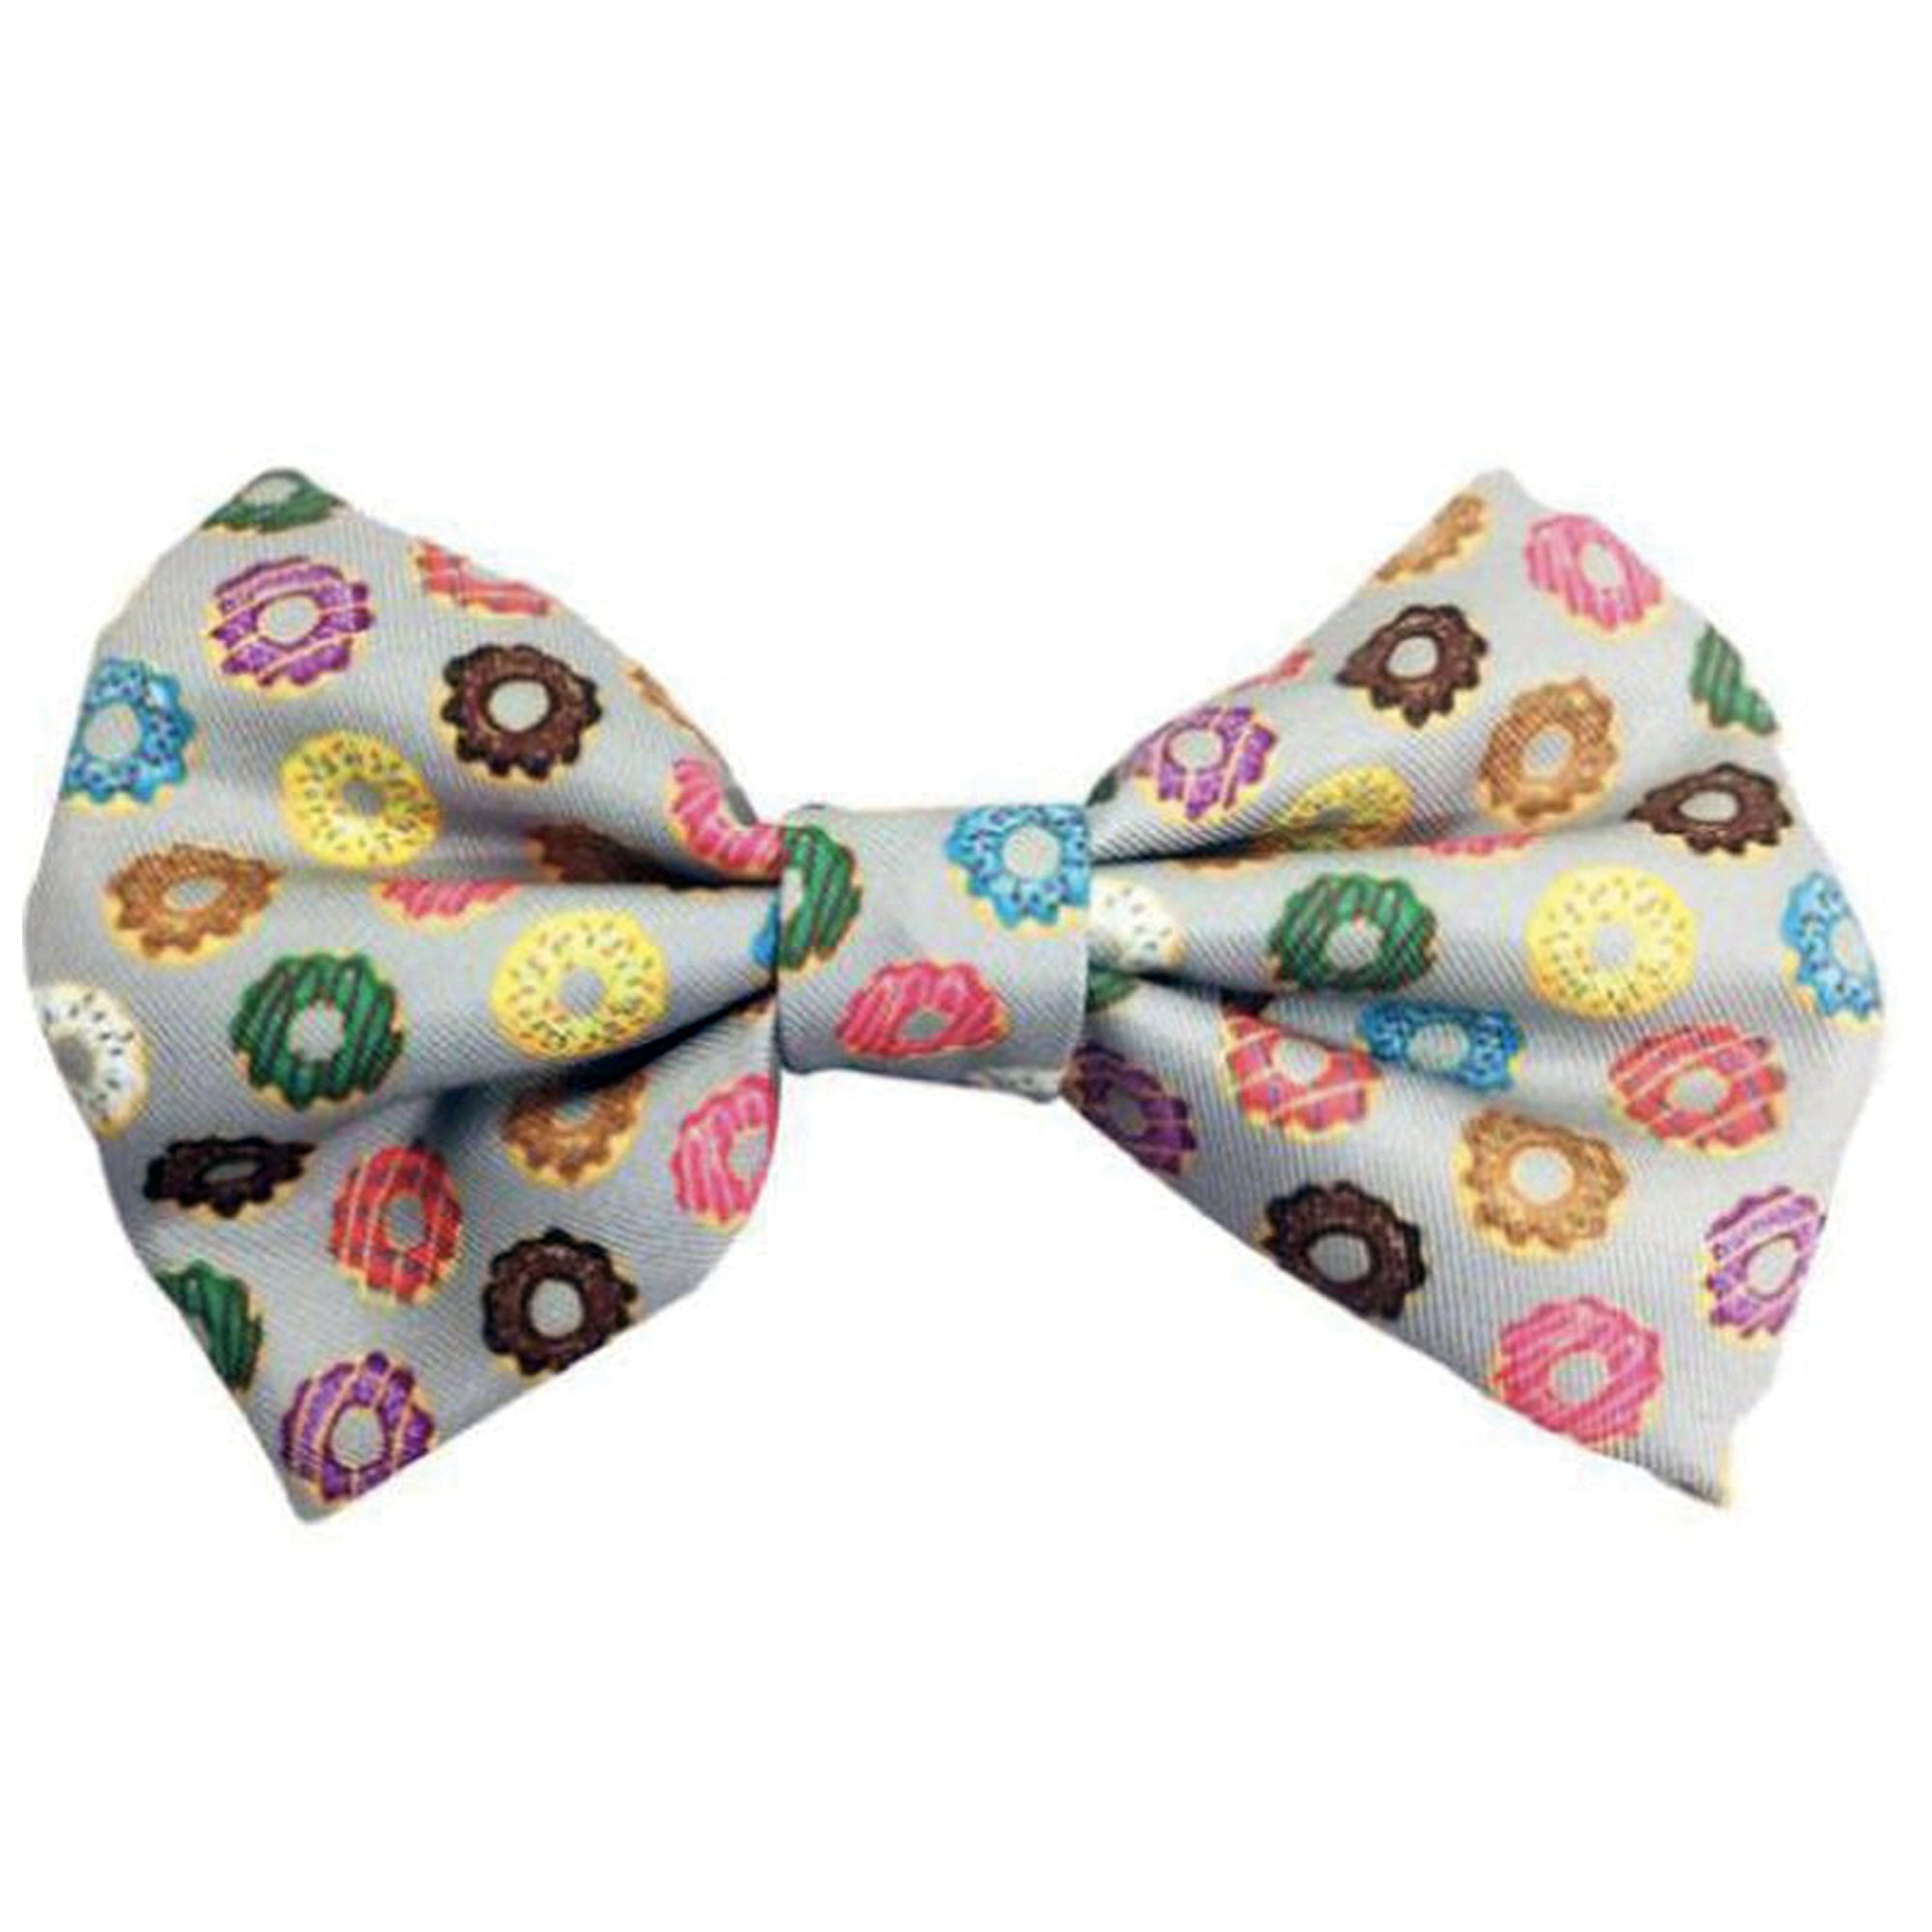 Frenchiestore dog Bowtie | Mint StarPup, Frenchie Dog, French Bulldog pet products